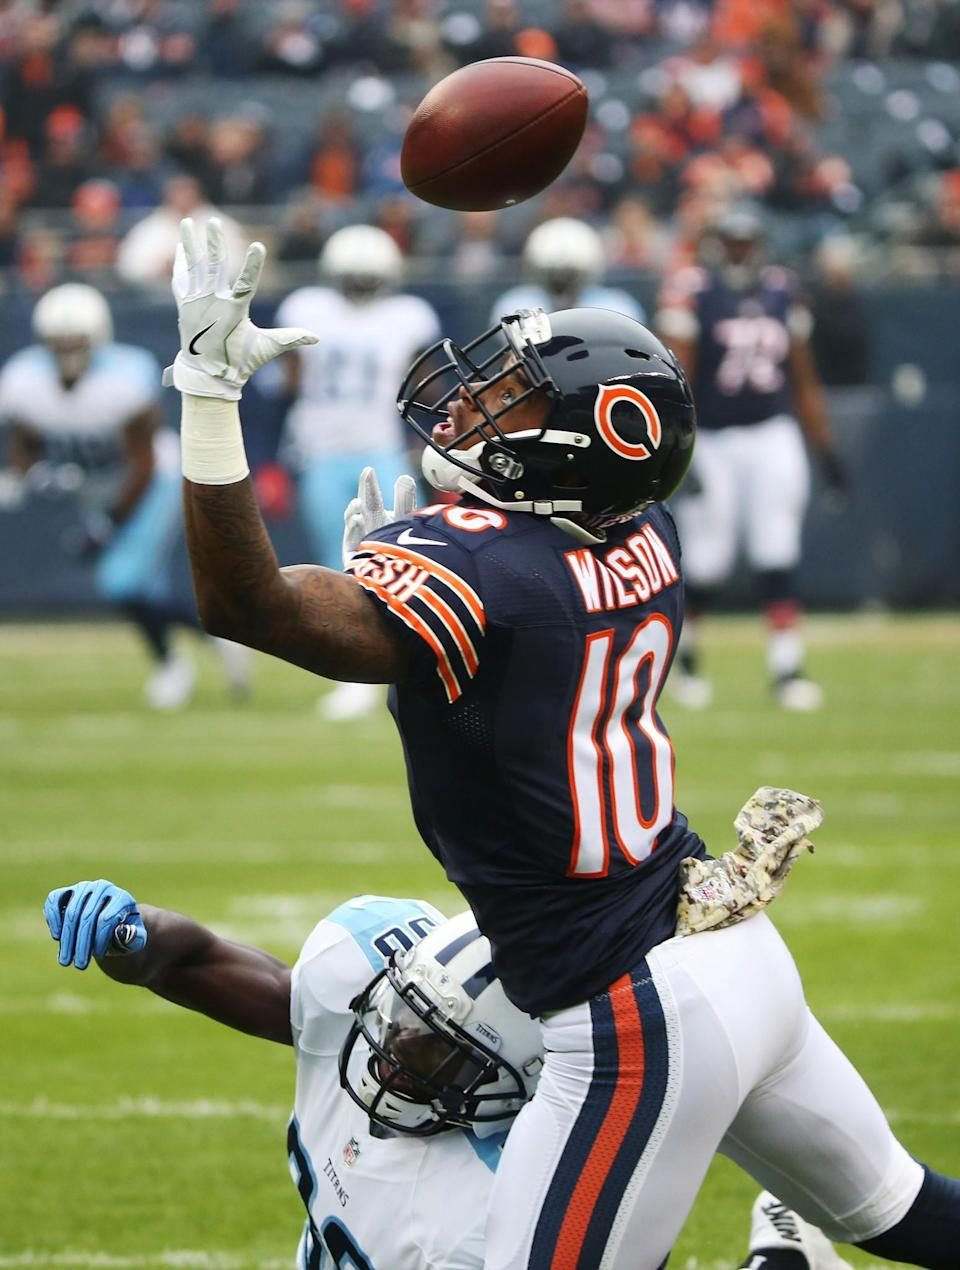 <p>Chicago Bears wide receiver Marquess Wilson (10) reaches for the ball as Tennessee Titans cornerback Jason McCourty (30) defends on Sunday, Nov. 27, 2016 at Soldier Field in Chicago, Ill. McCourty was called for defensive pass interference on the play. (John J. Kim/Chicago Tribune/TNS via Getty Images) </p>